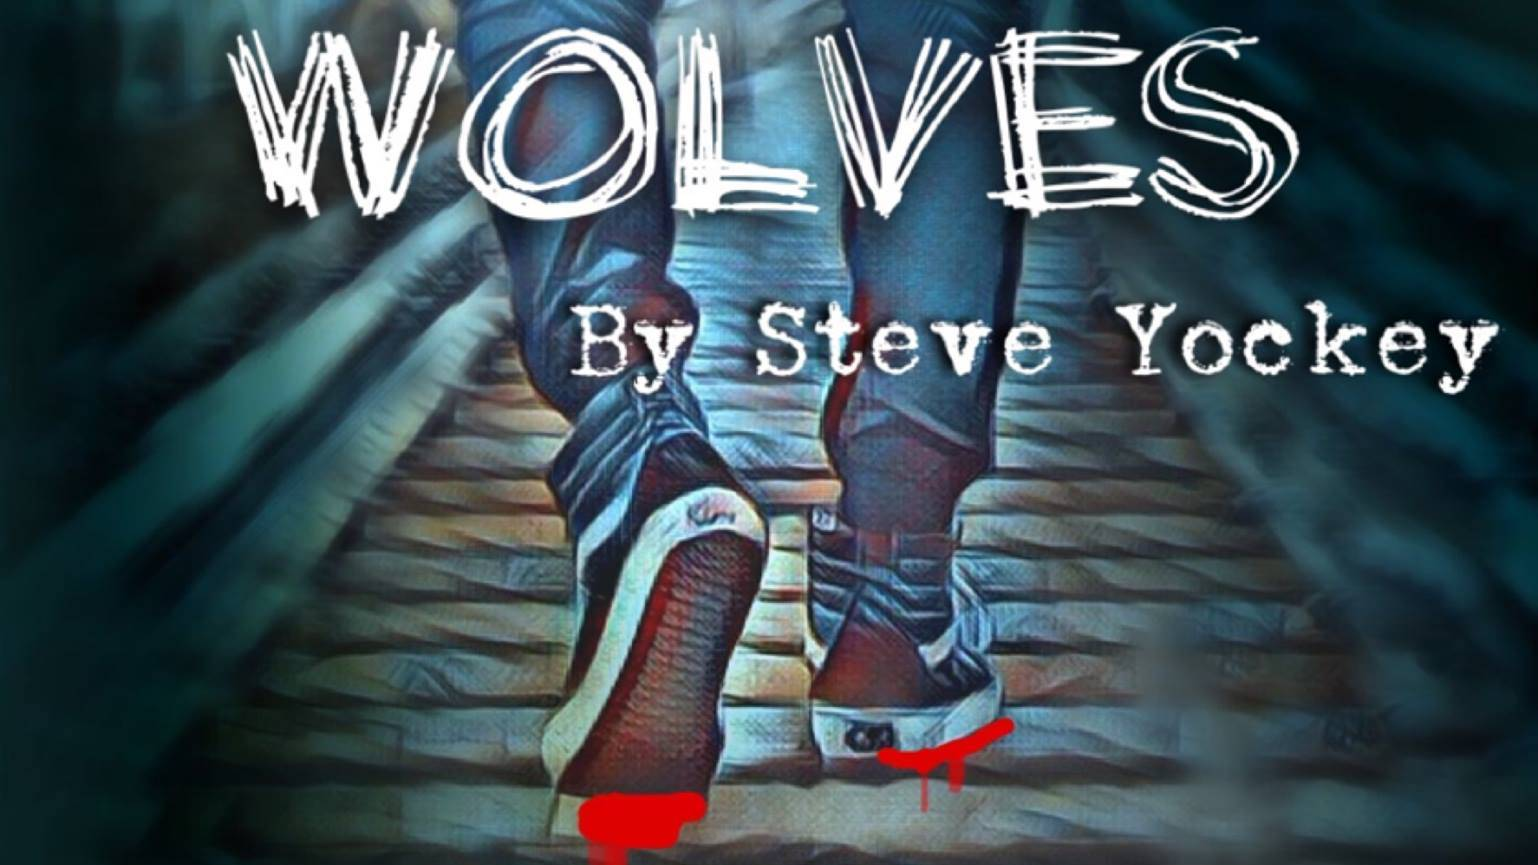 Wolves, by Steven Yockey